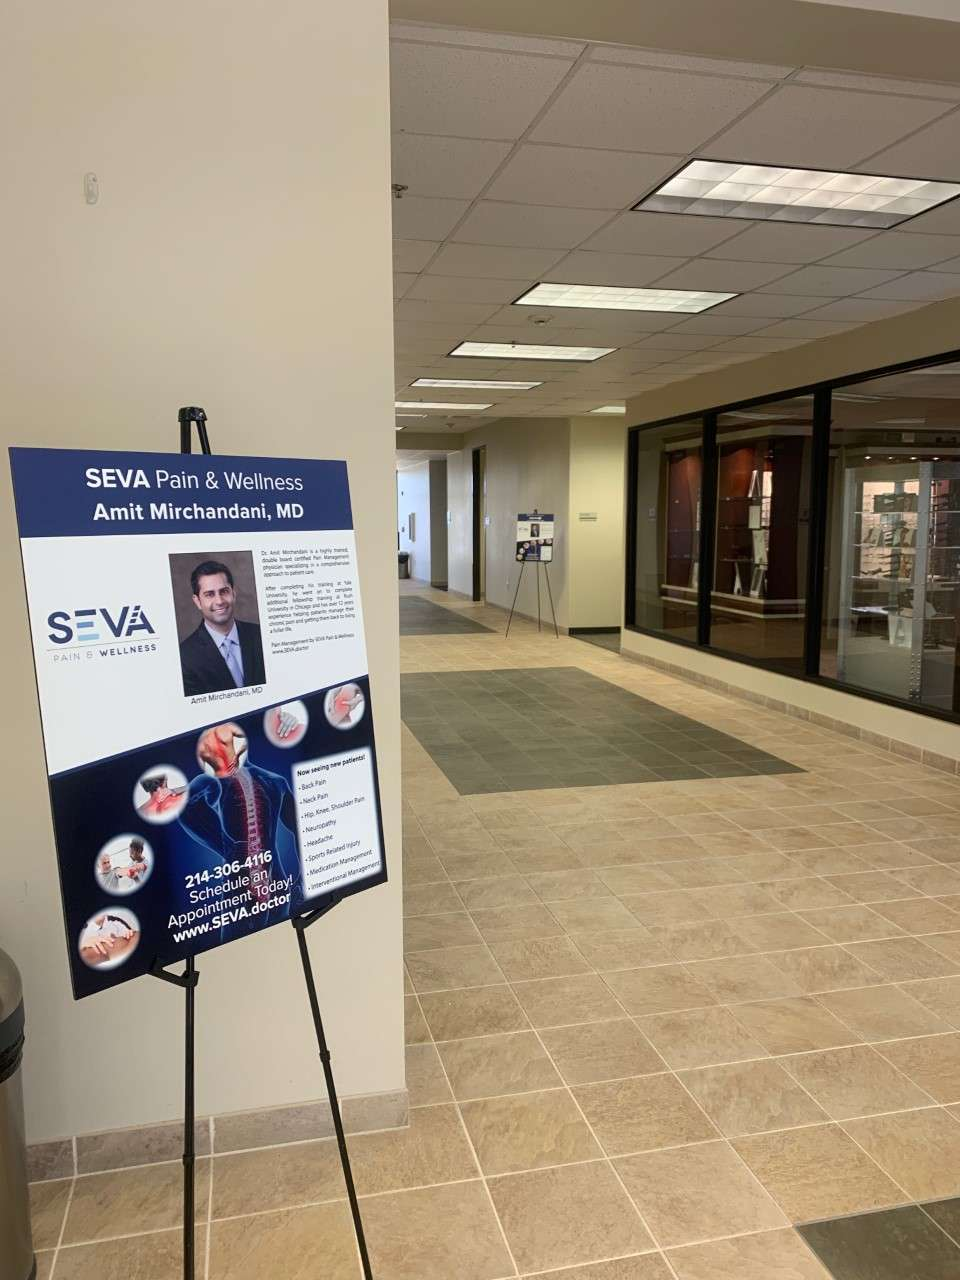 SEVA Pain & Wellness - hospital  | Photo 1 of 10 | Address: 1850 Lakepointe Dr Suite 700, Lewisville, TX 75057, USA | Phone: (214) 306-4116